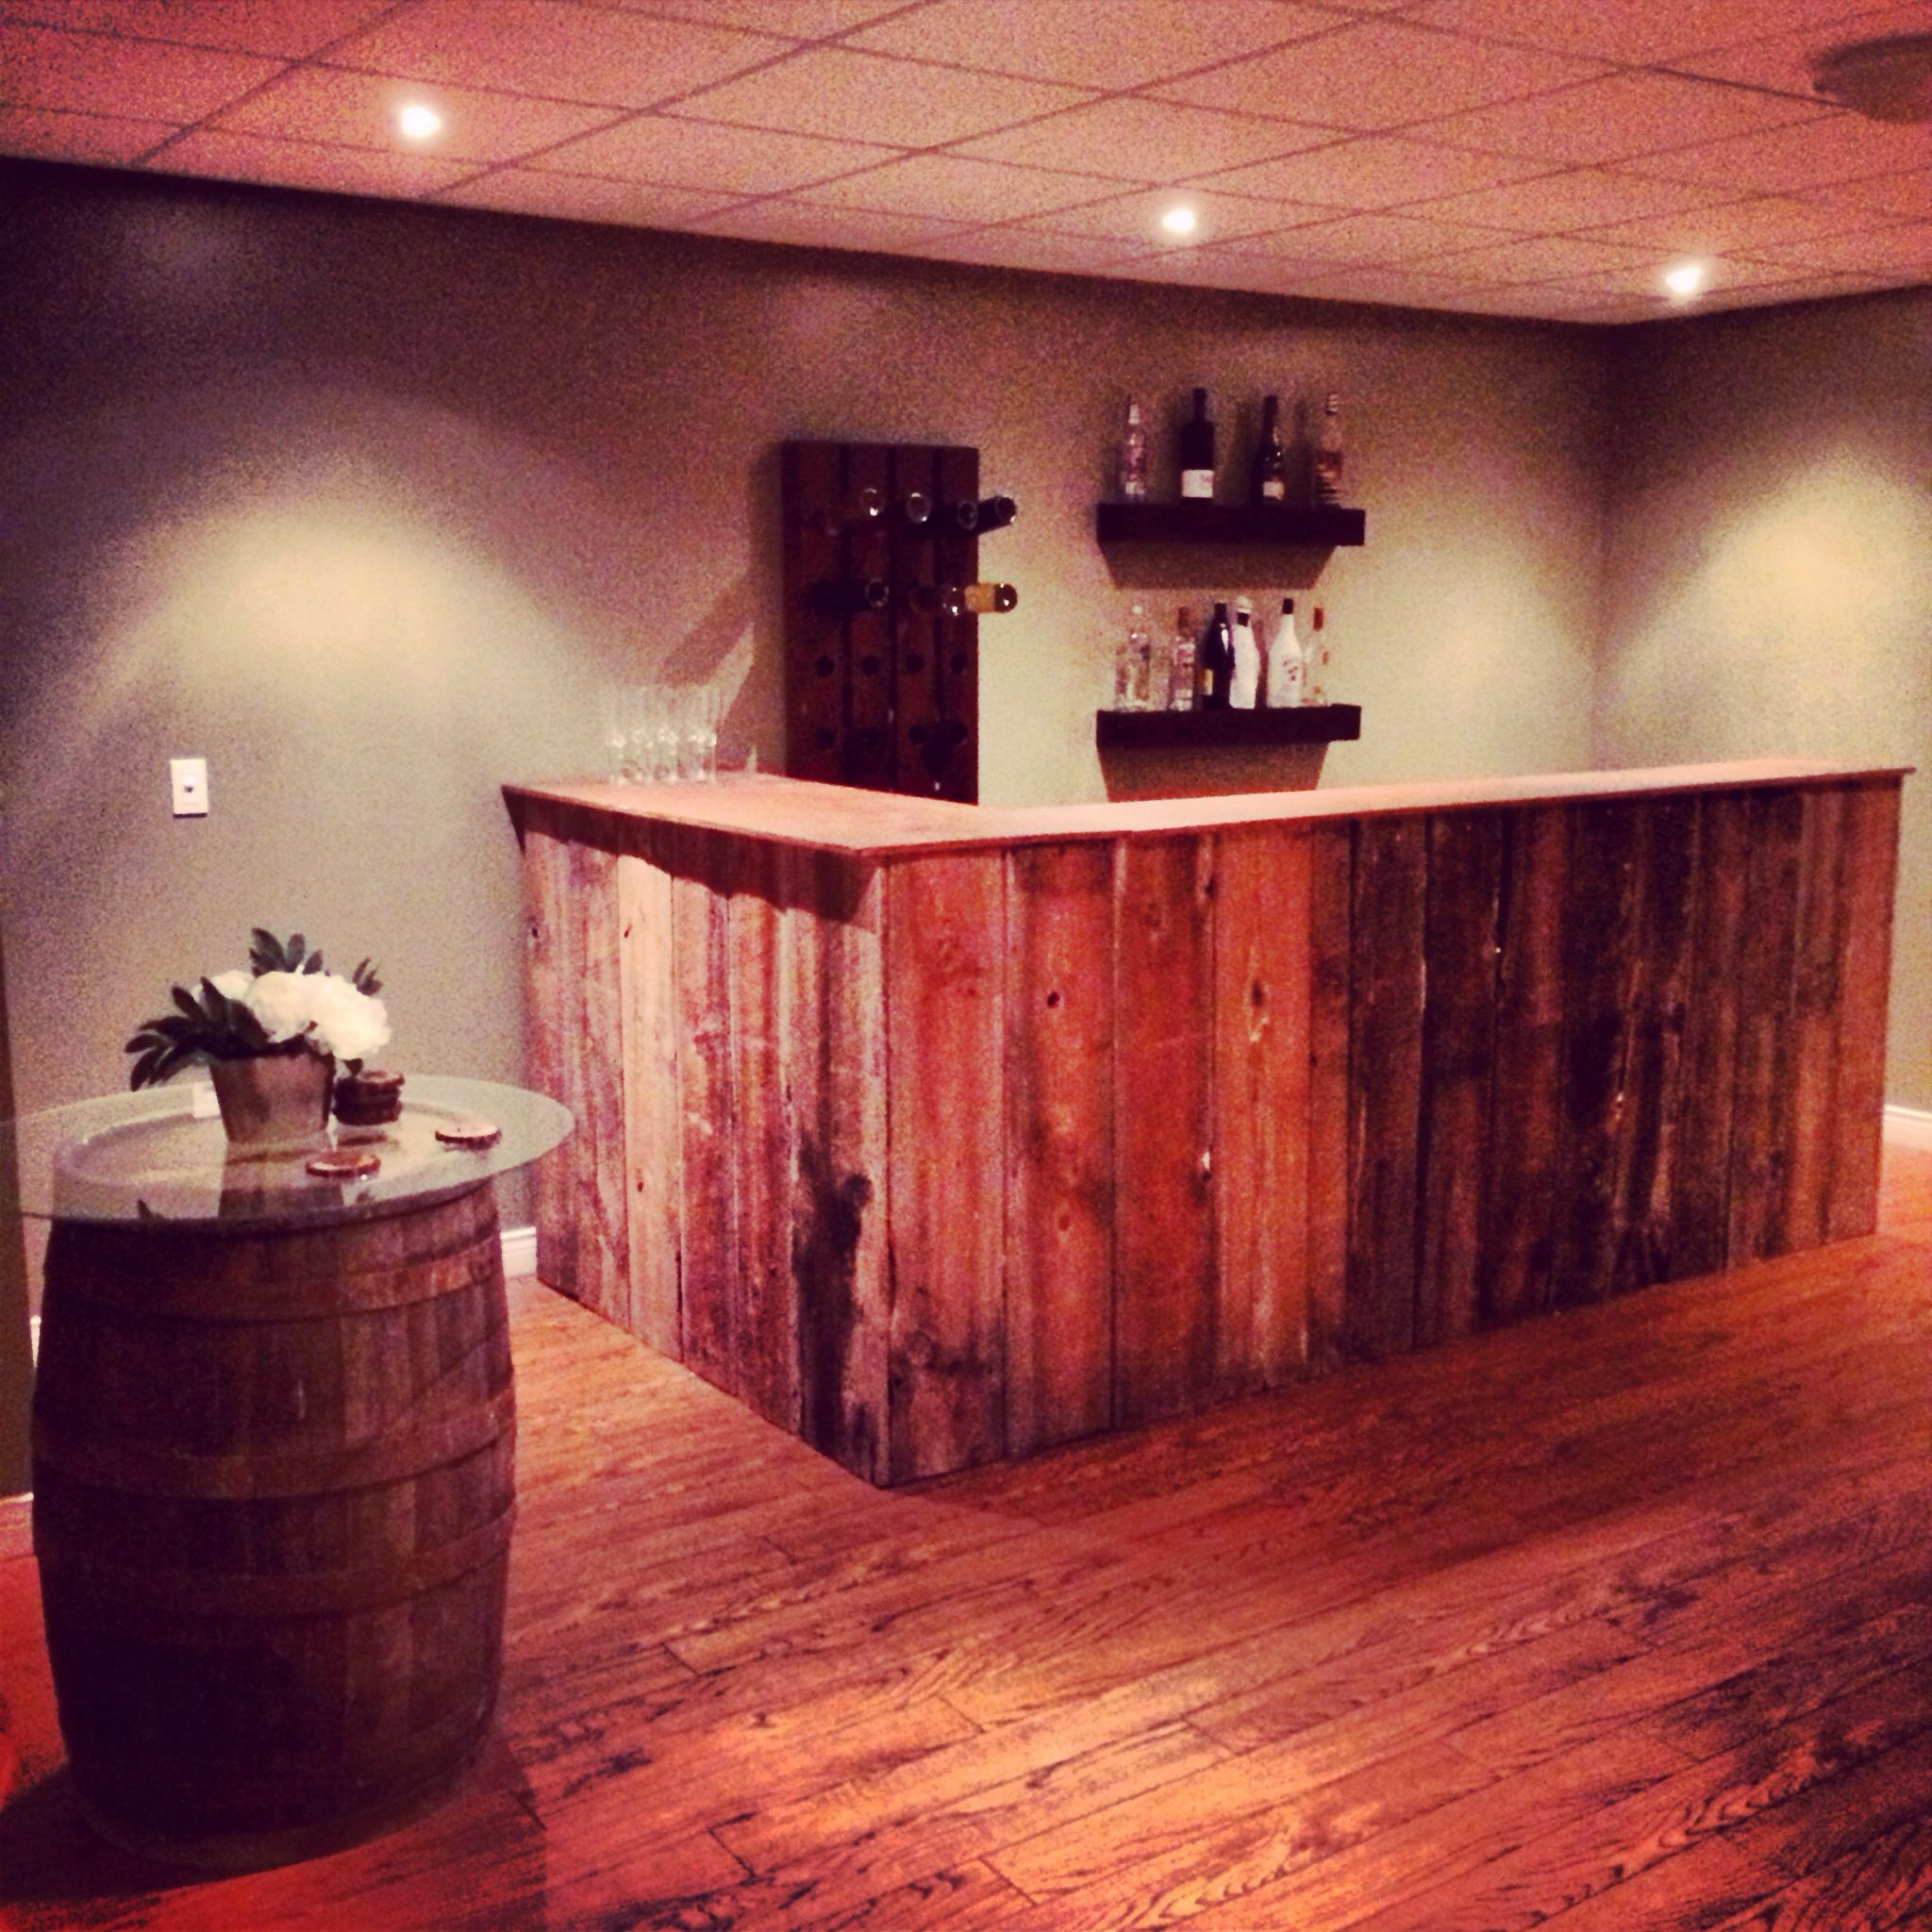 My DIY barn board bar . DIY barrel standing pub table ... These two ...